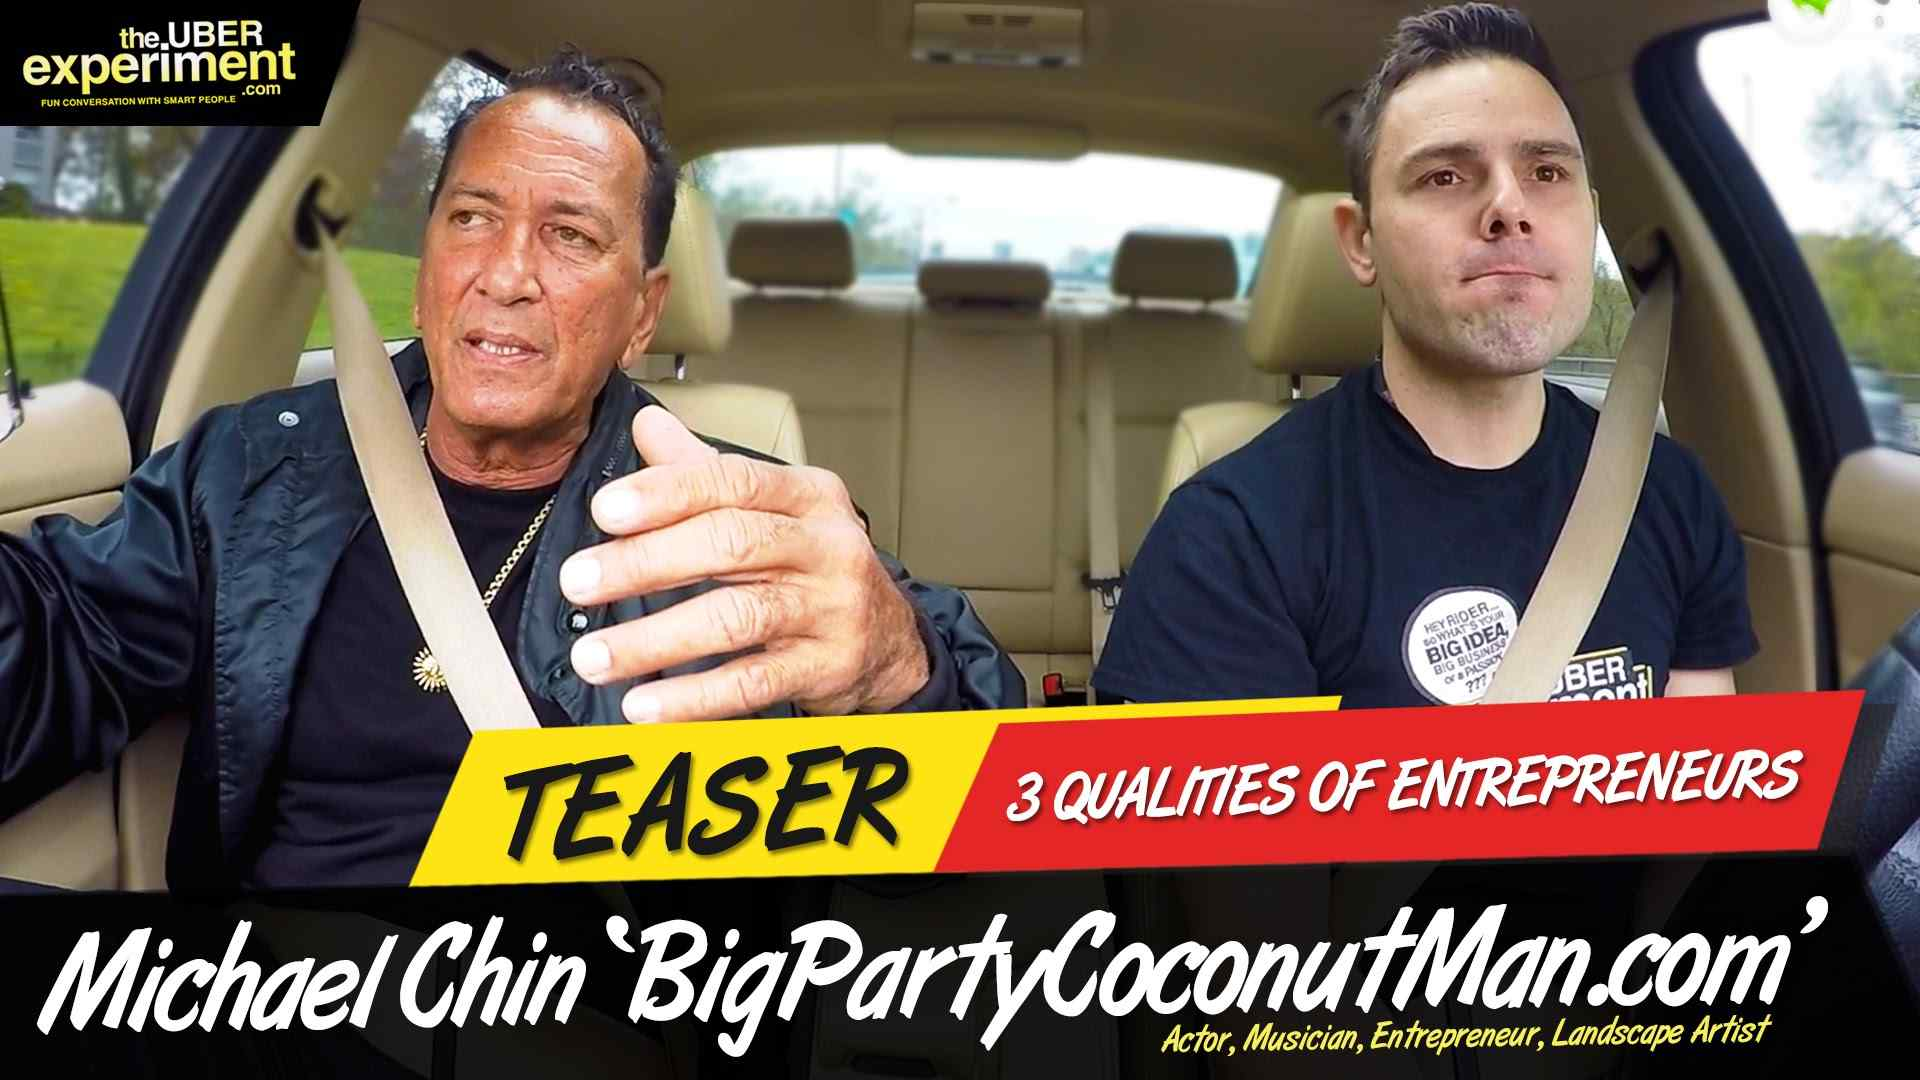 3 QUALITIES OF AN ENTREPRENEUR - Actor, Big Party Coconut Man MICHAEL CHIN rides The UBER Experiment